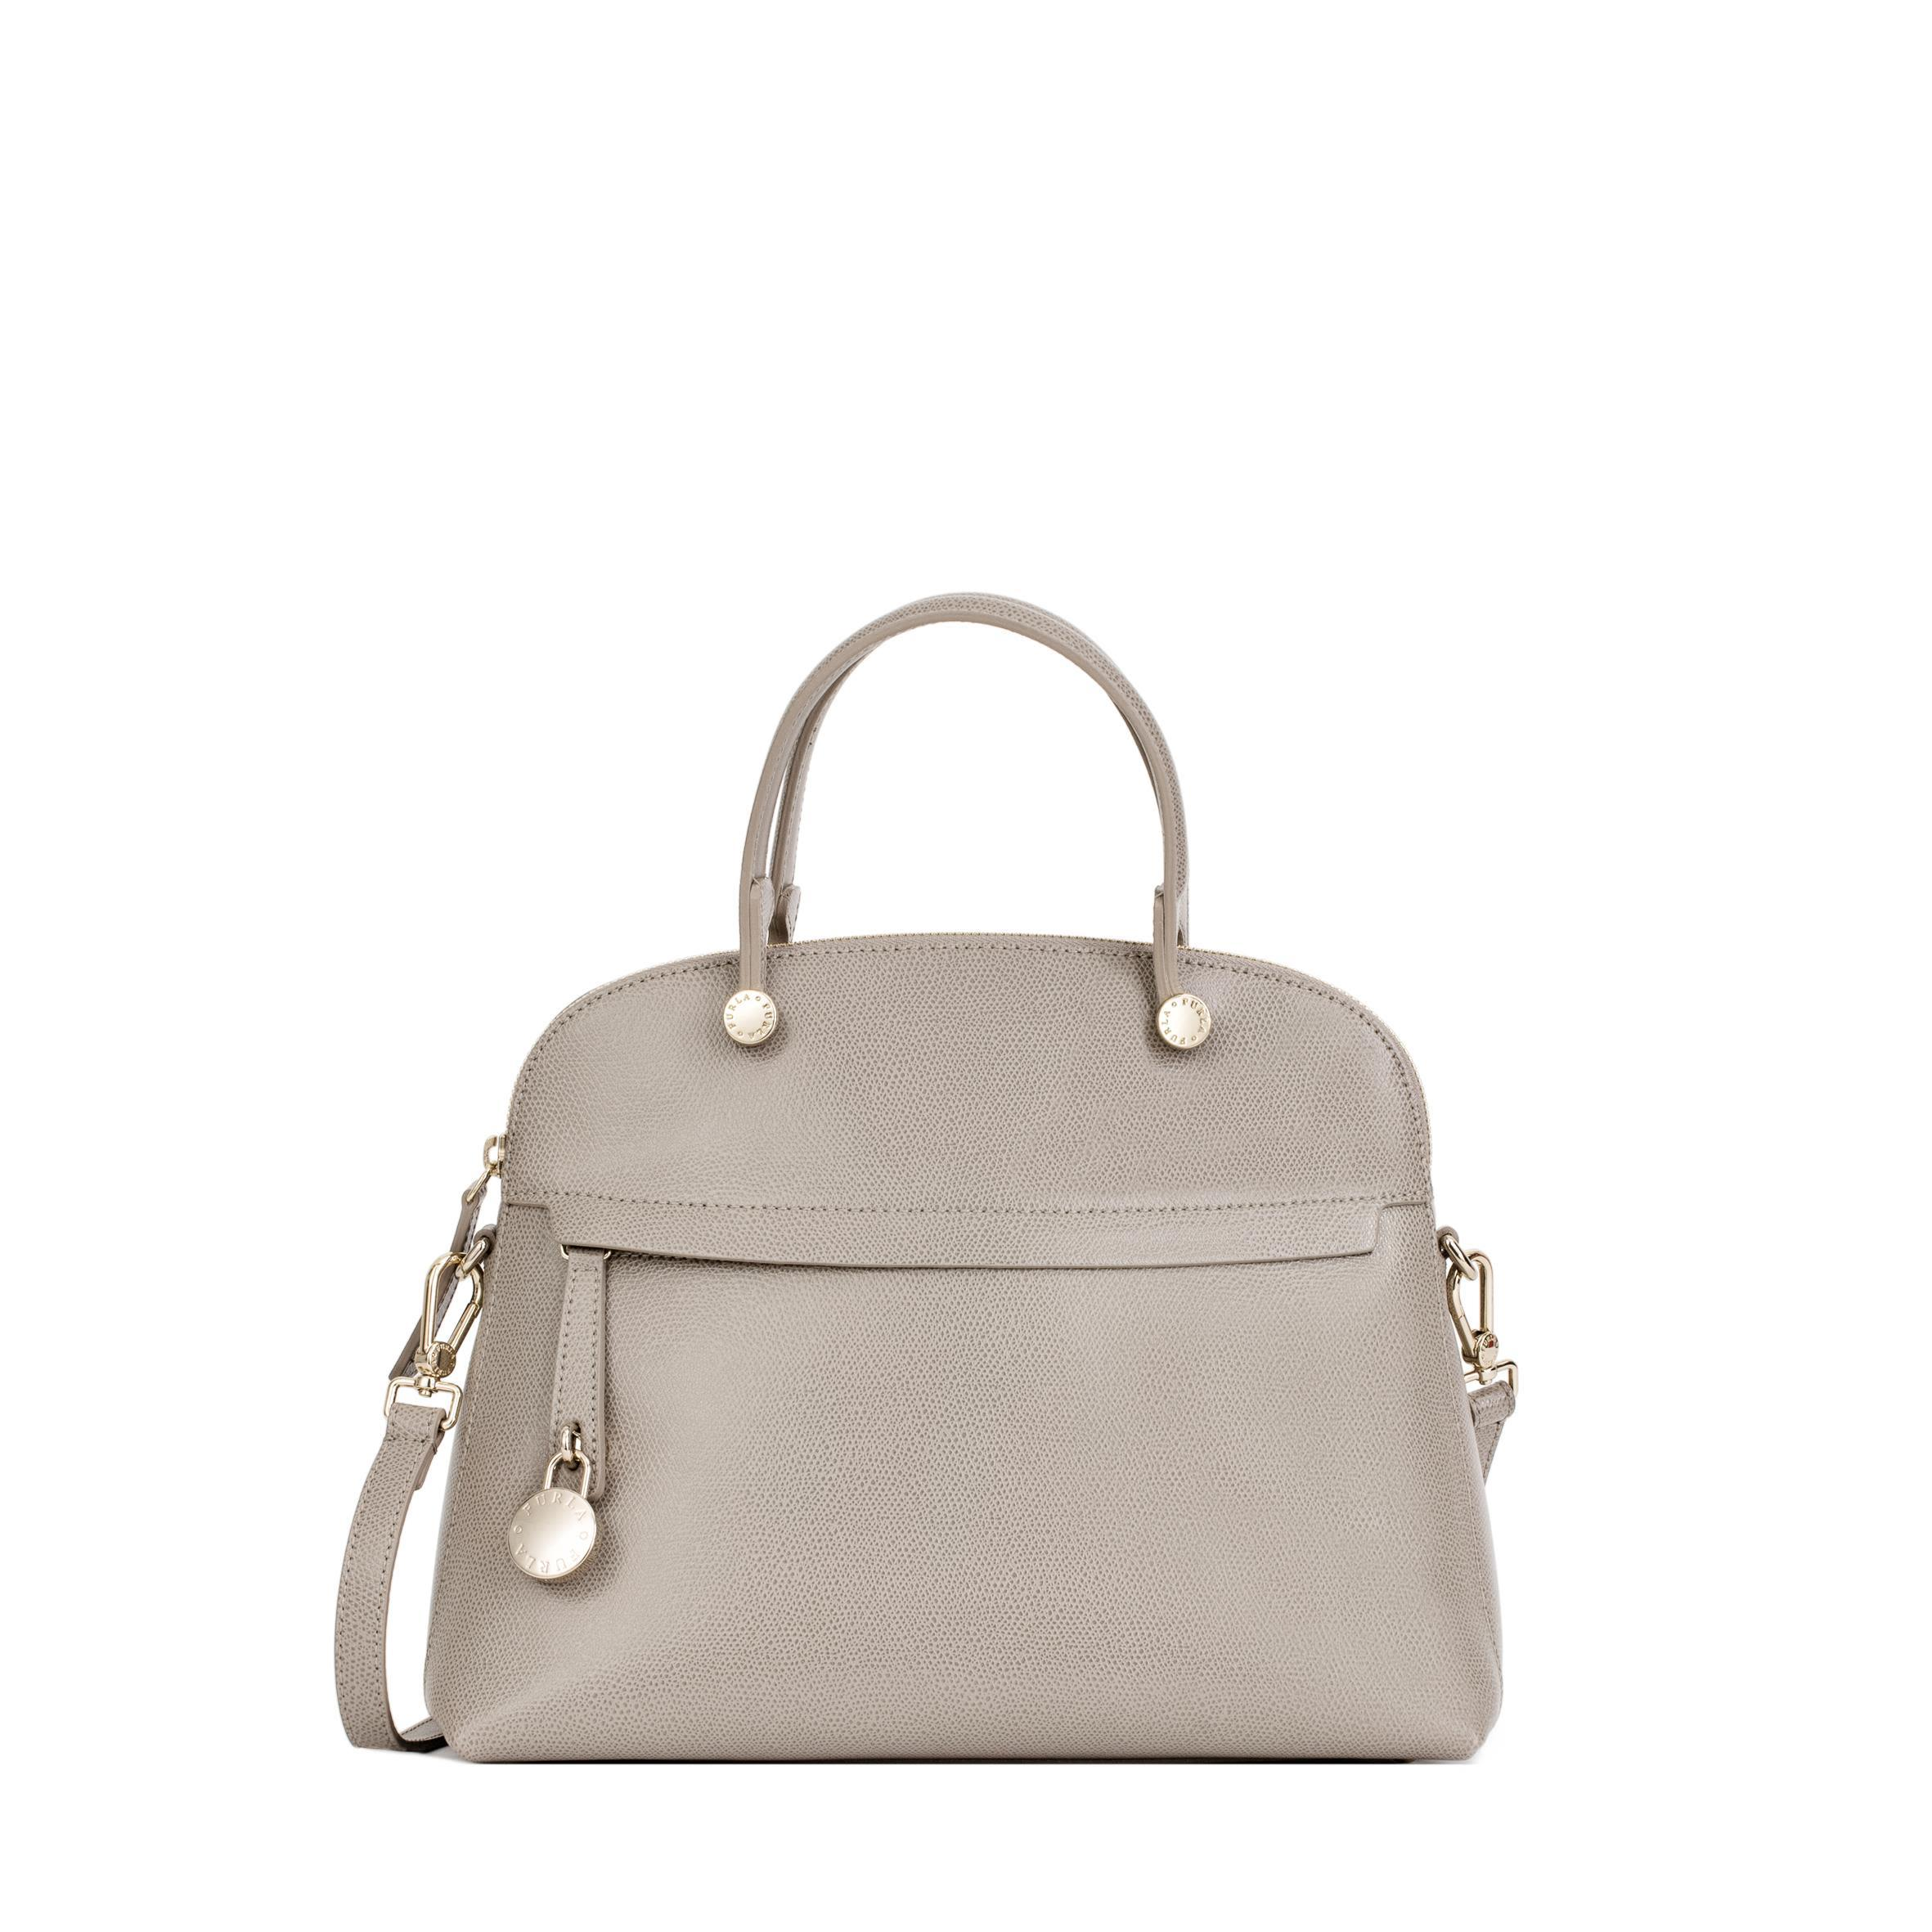 Furla Piper Leather Bag In Sand